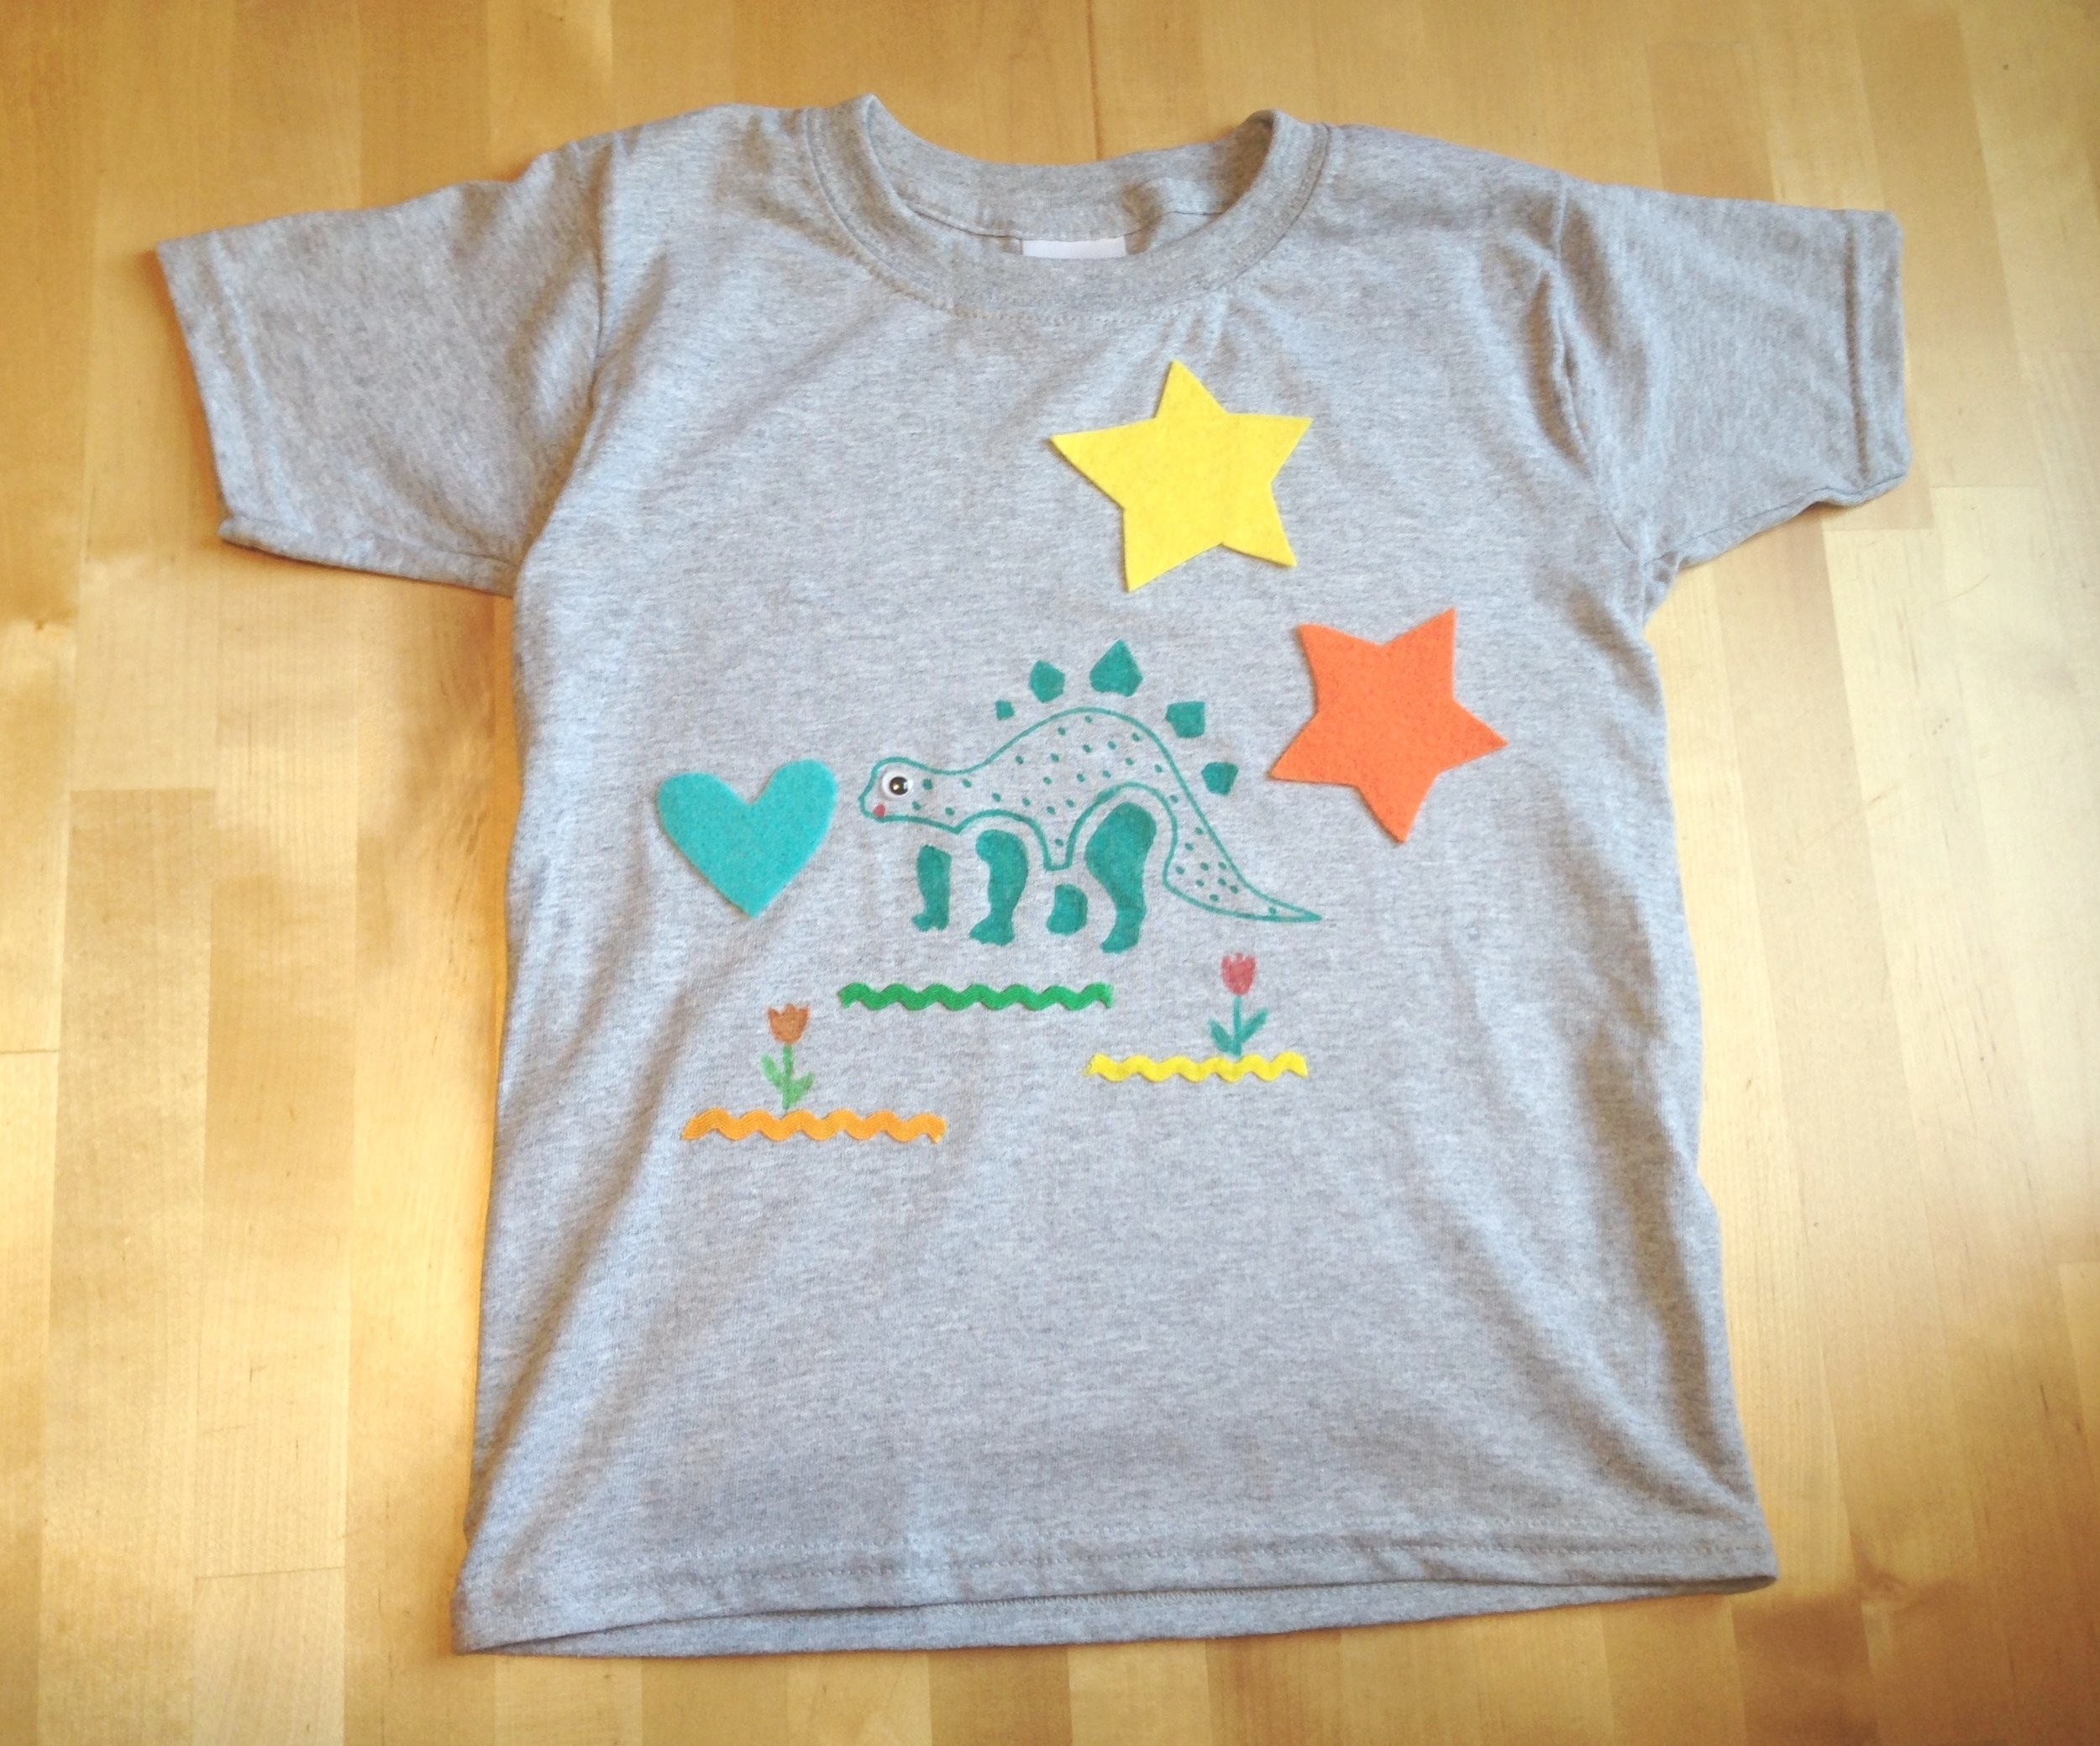 Easy-Tee-sy, t-shirt design- ages 5 and up - Have you been searching for a t-shirt with a robot, a dinosaur,anda bunny on it? Not so easy to find, but you can make it! Kids will use stencils, fabric markers, felt appliques, sparkles, pompoms, google eyes and trims to design a unique and one of a kind t-shirt.